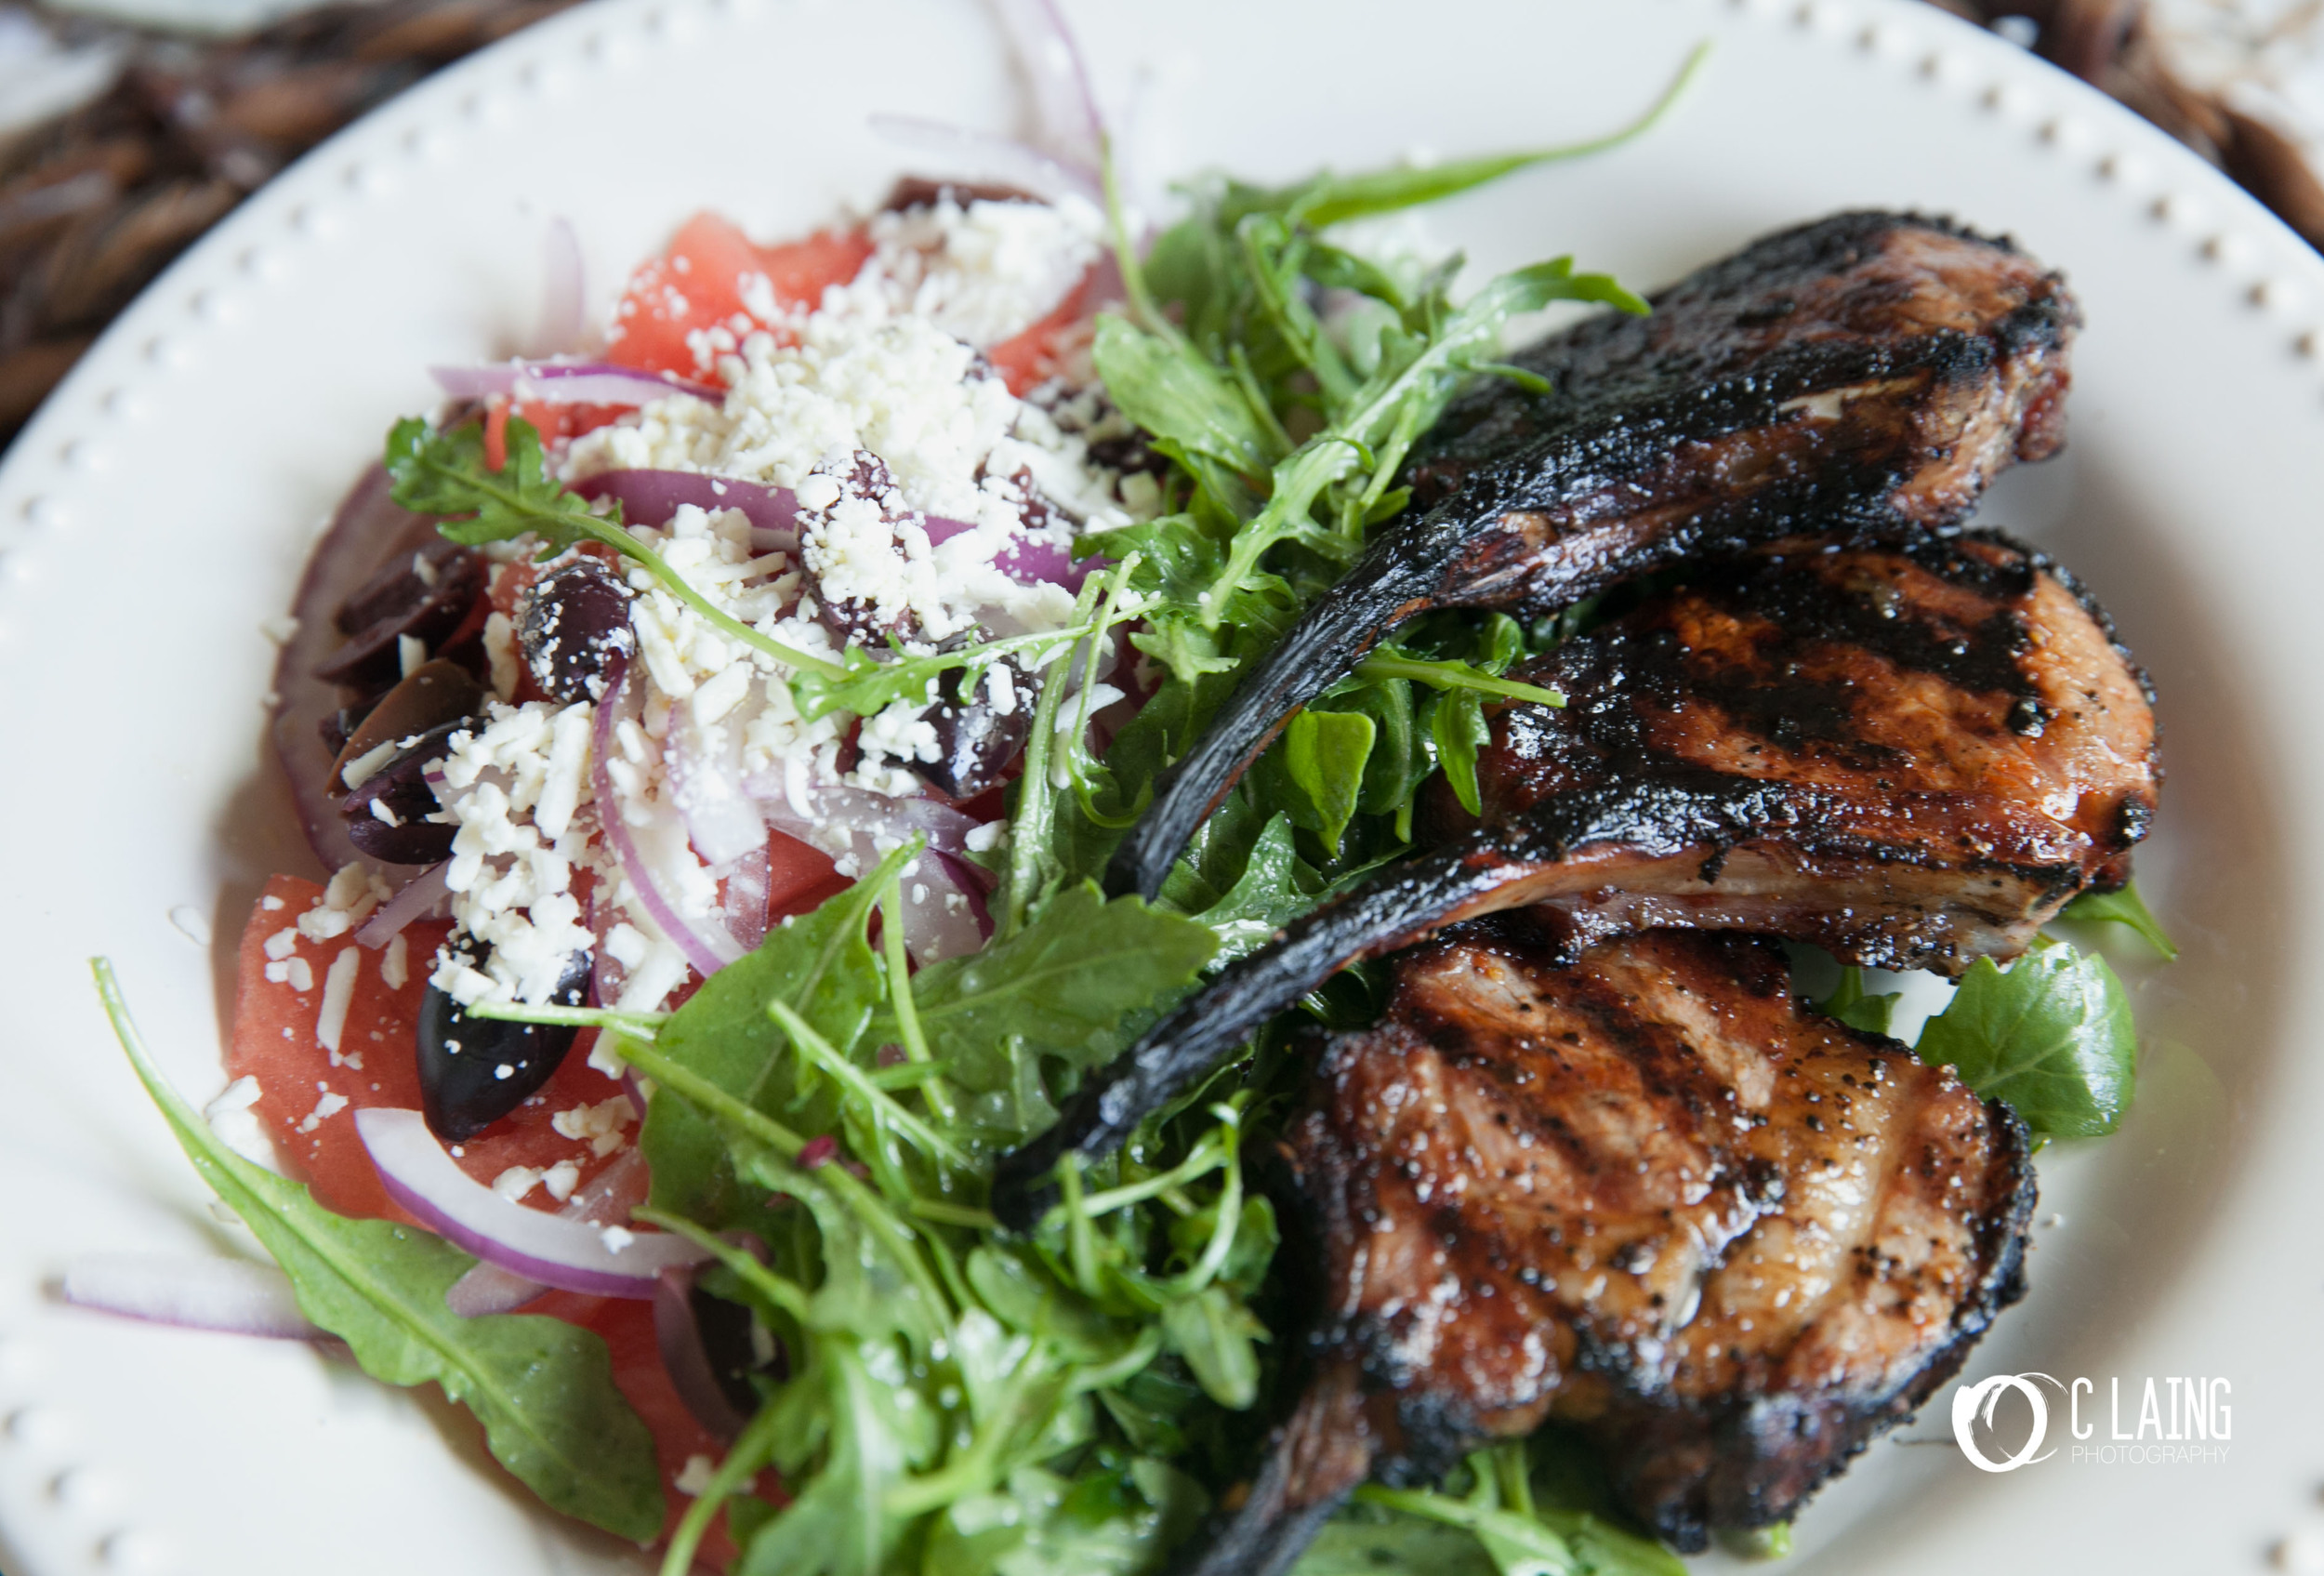 Grilled lamb chops with watermelon-feta salad. This recipe was absolutely INCREDIBLE! and super fast and easy to make. If like me, you wear many hats and are looking for fast delicious meals to make; look no further.